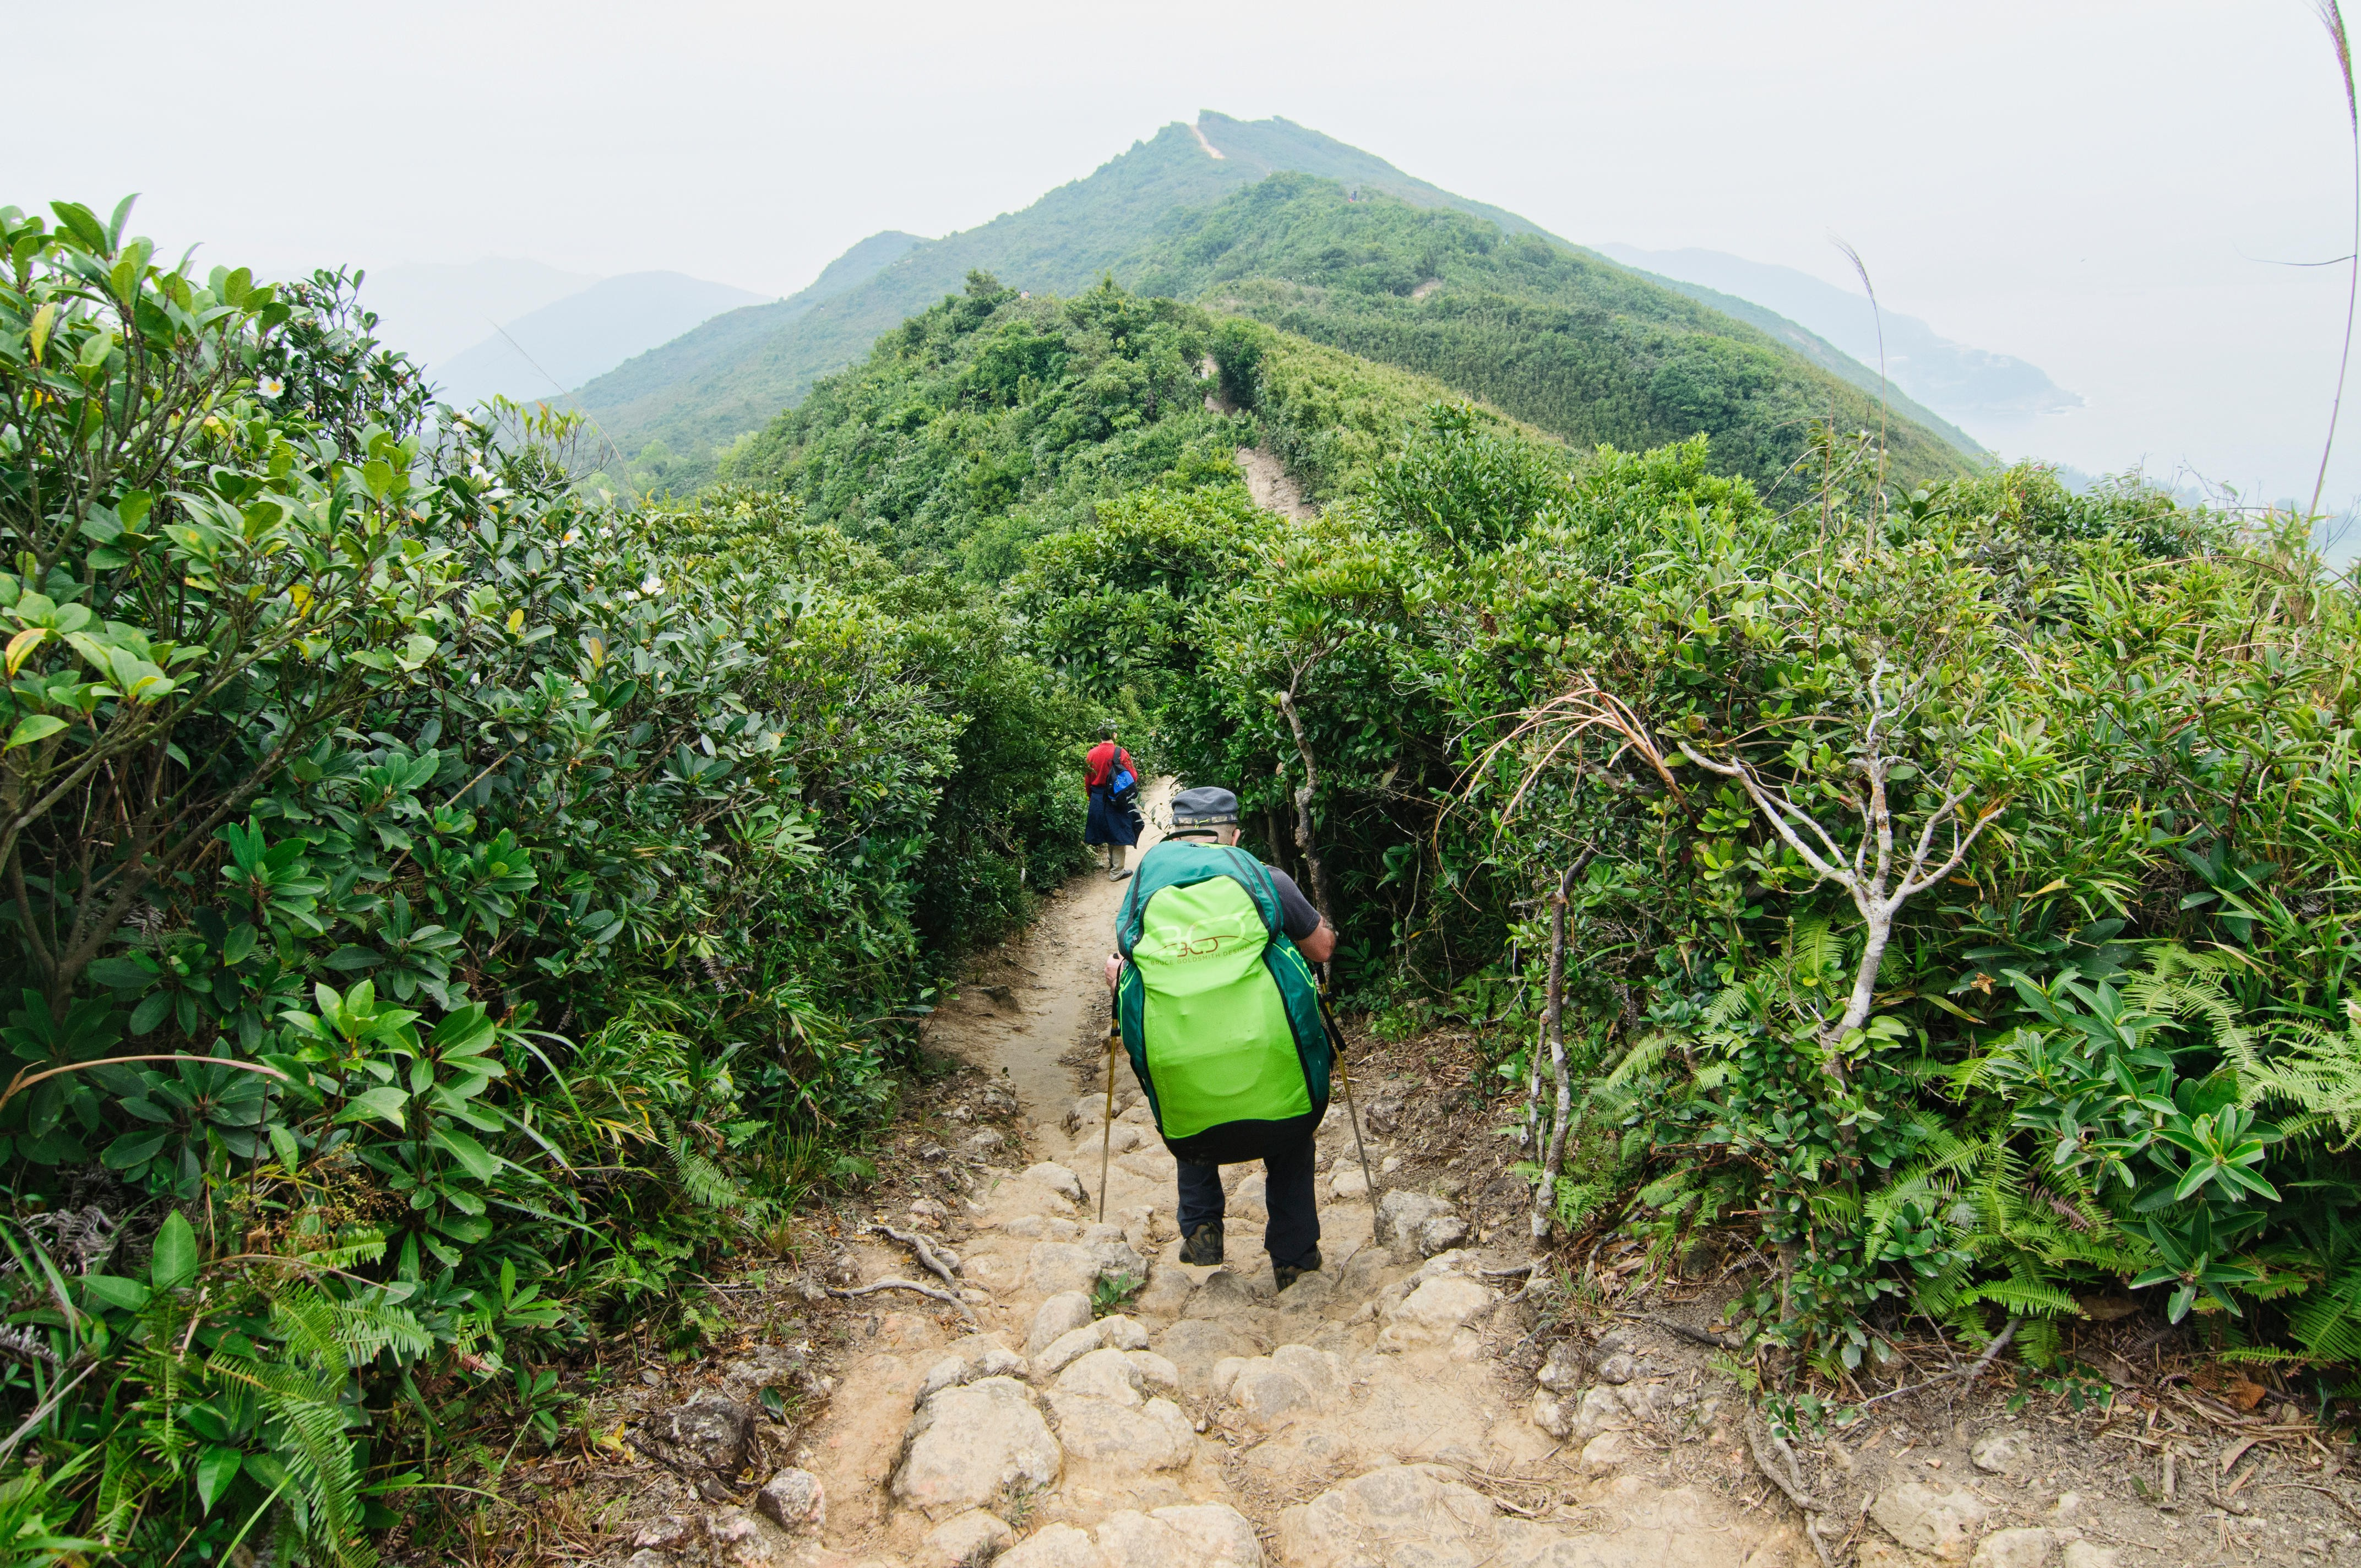 The Easiest Hiking Trails for Beginners